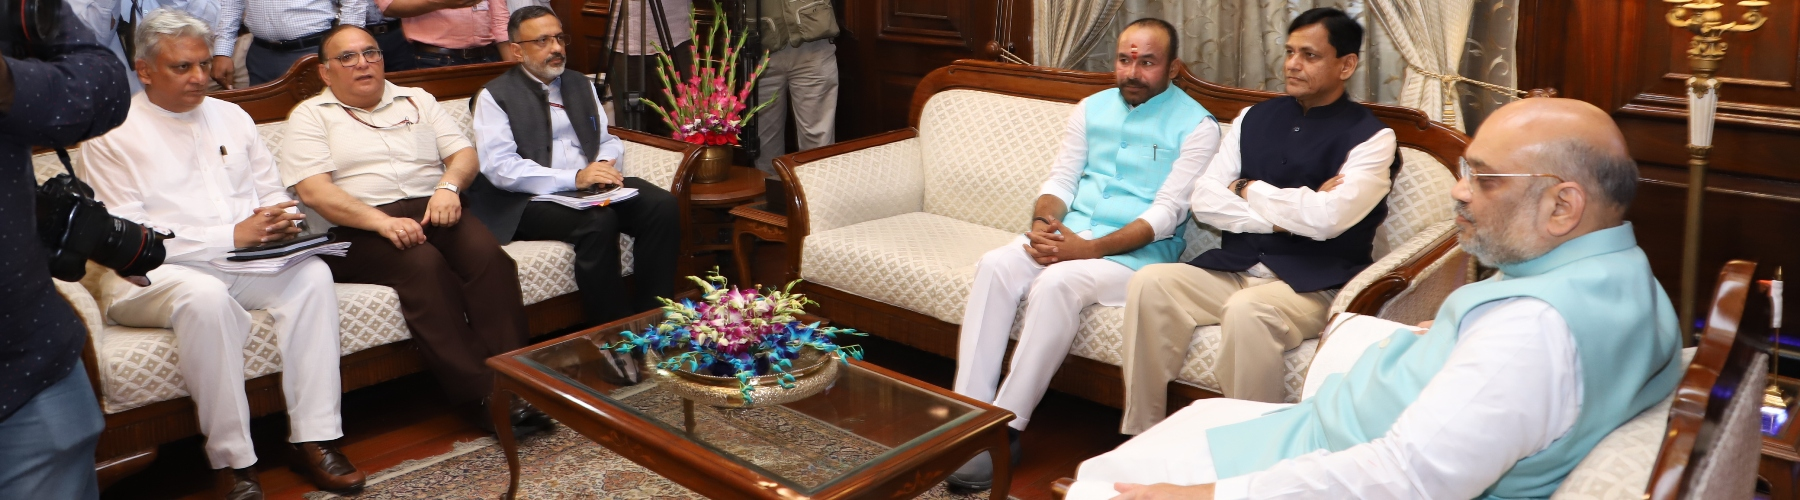 Home Minister Shri Amit Shah in a meeting with MoS Shri G. Kishan Reddy & Shri Nityanand Rai, after taking charge of office in New Delhi on 01.06.2019. Shri Rajiv Gauba, HS and other officers are also seen.